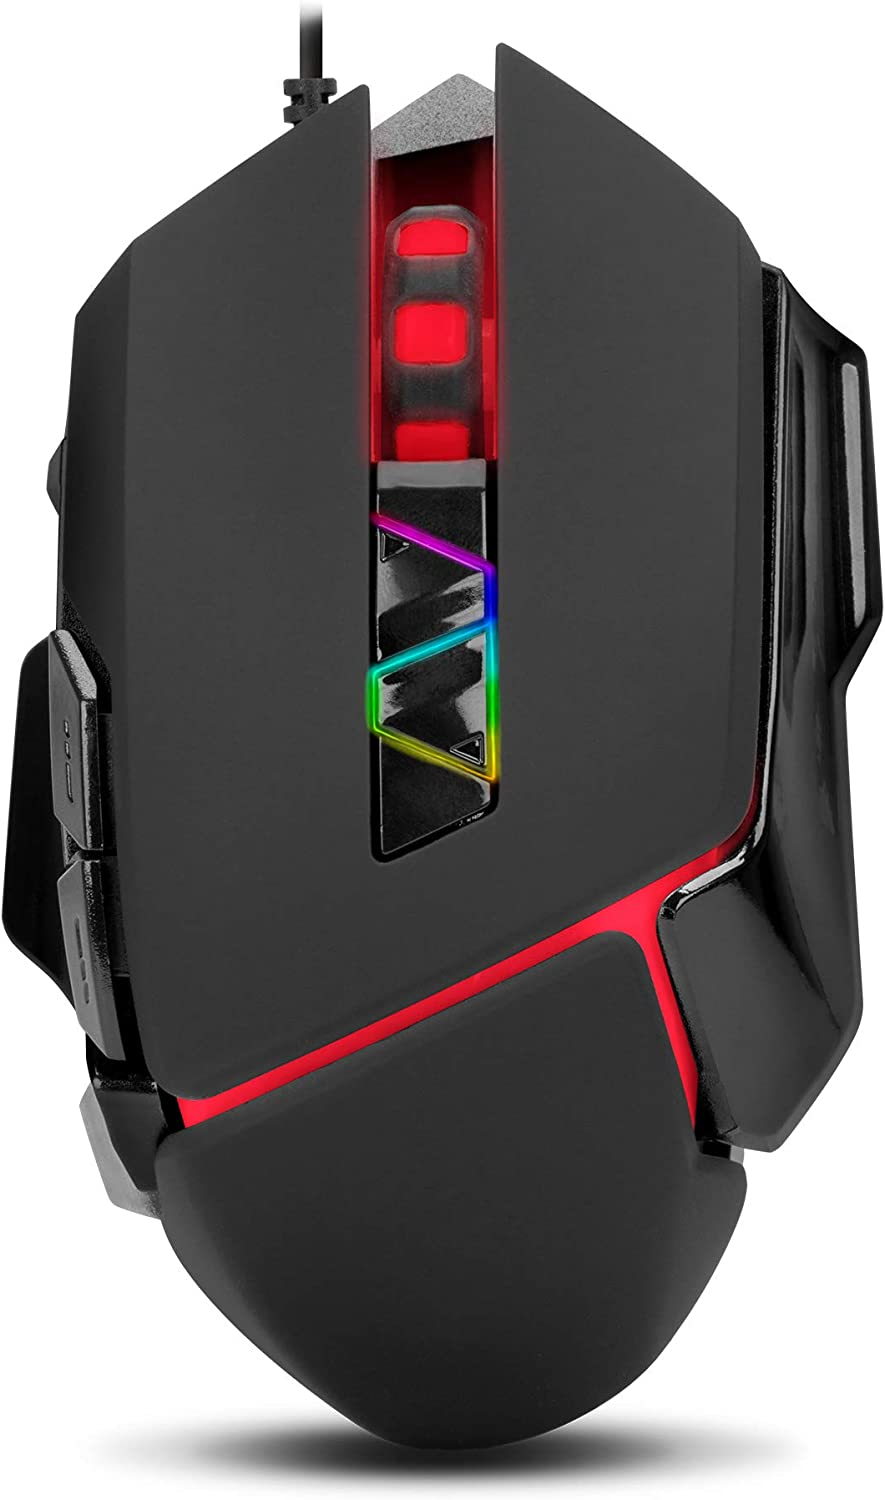 Samurai 7200 DPI Ergonomic USB Wired Gaming Mouse with 5G Optical Sensor - Works with Mac or PC Laptops and Computers